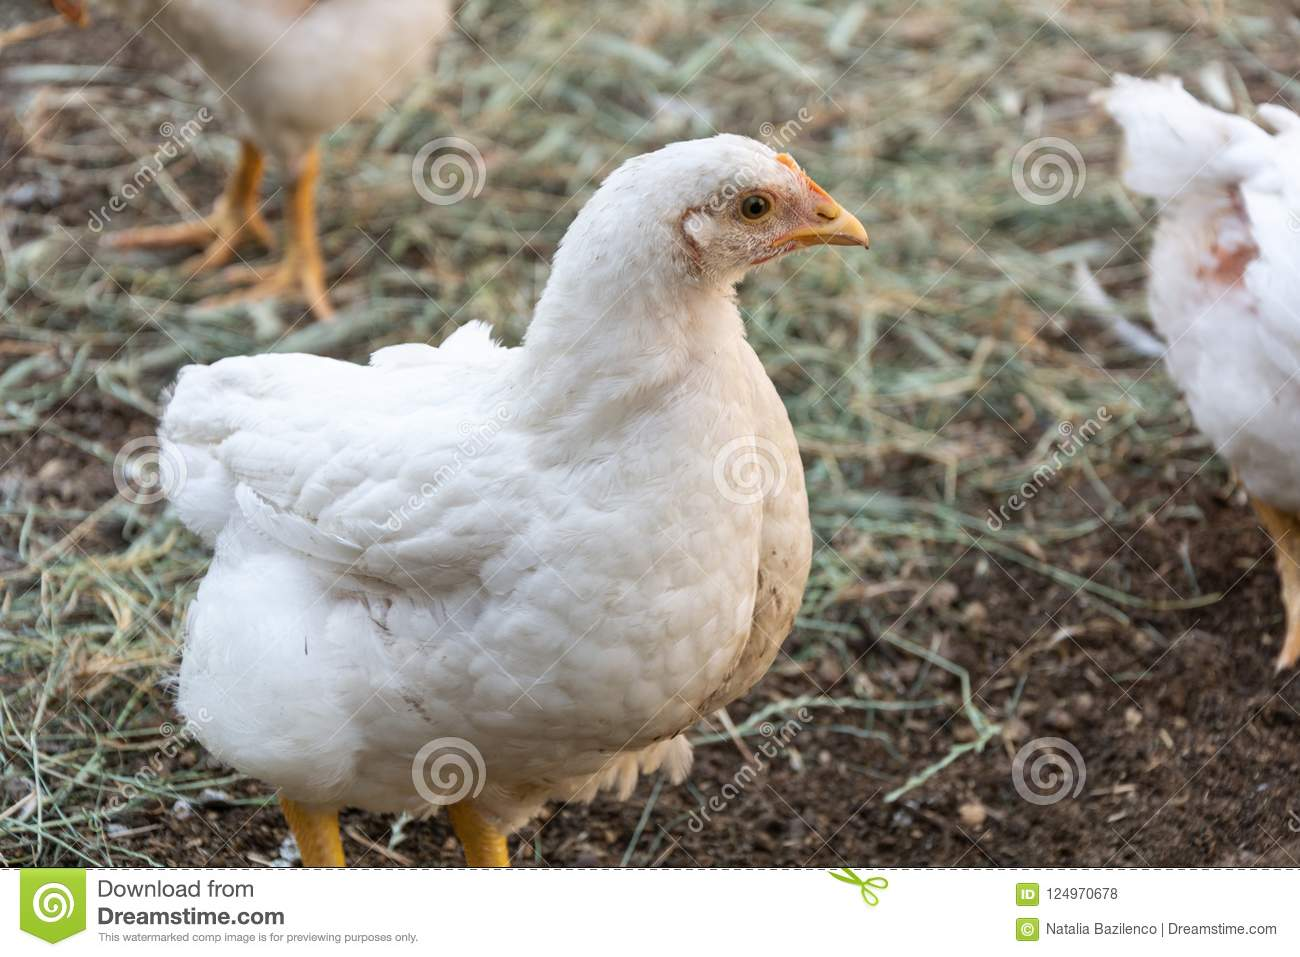 Broiler Chickens On A Rural Poultry Farm Stock Photo - Image of